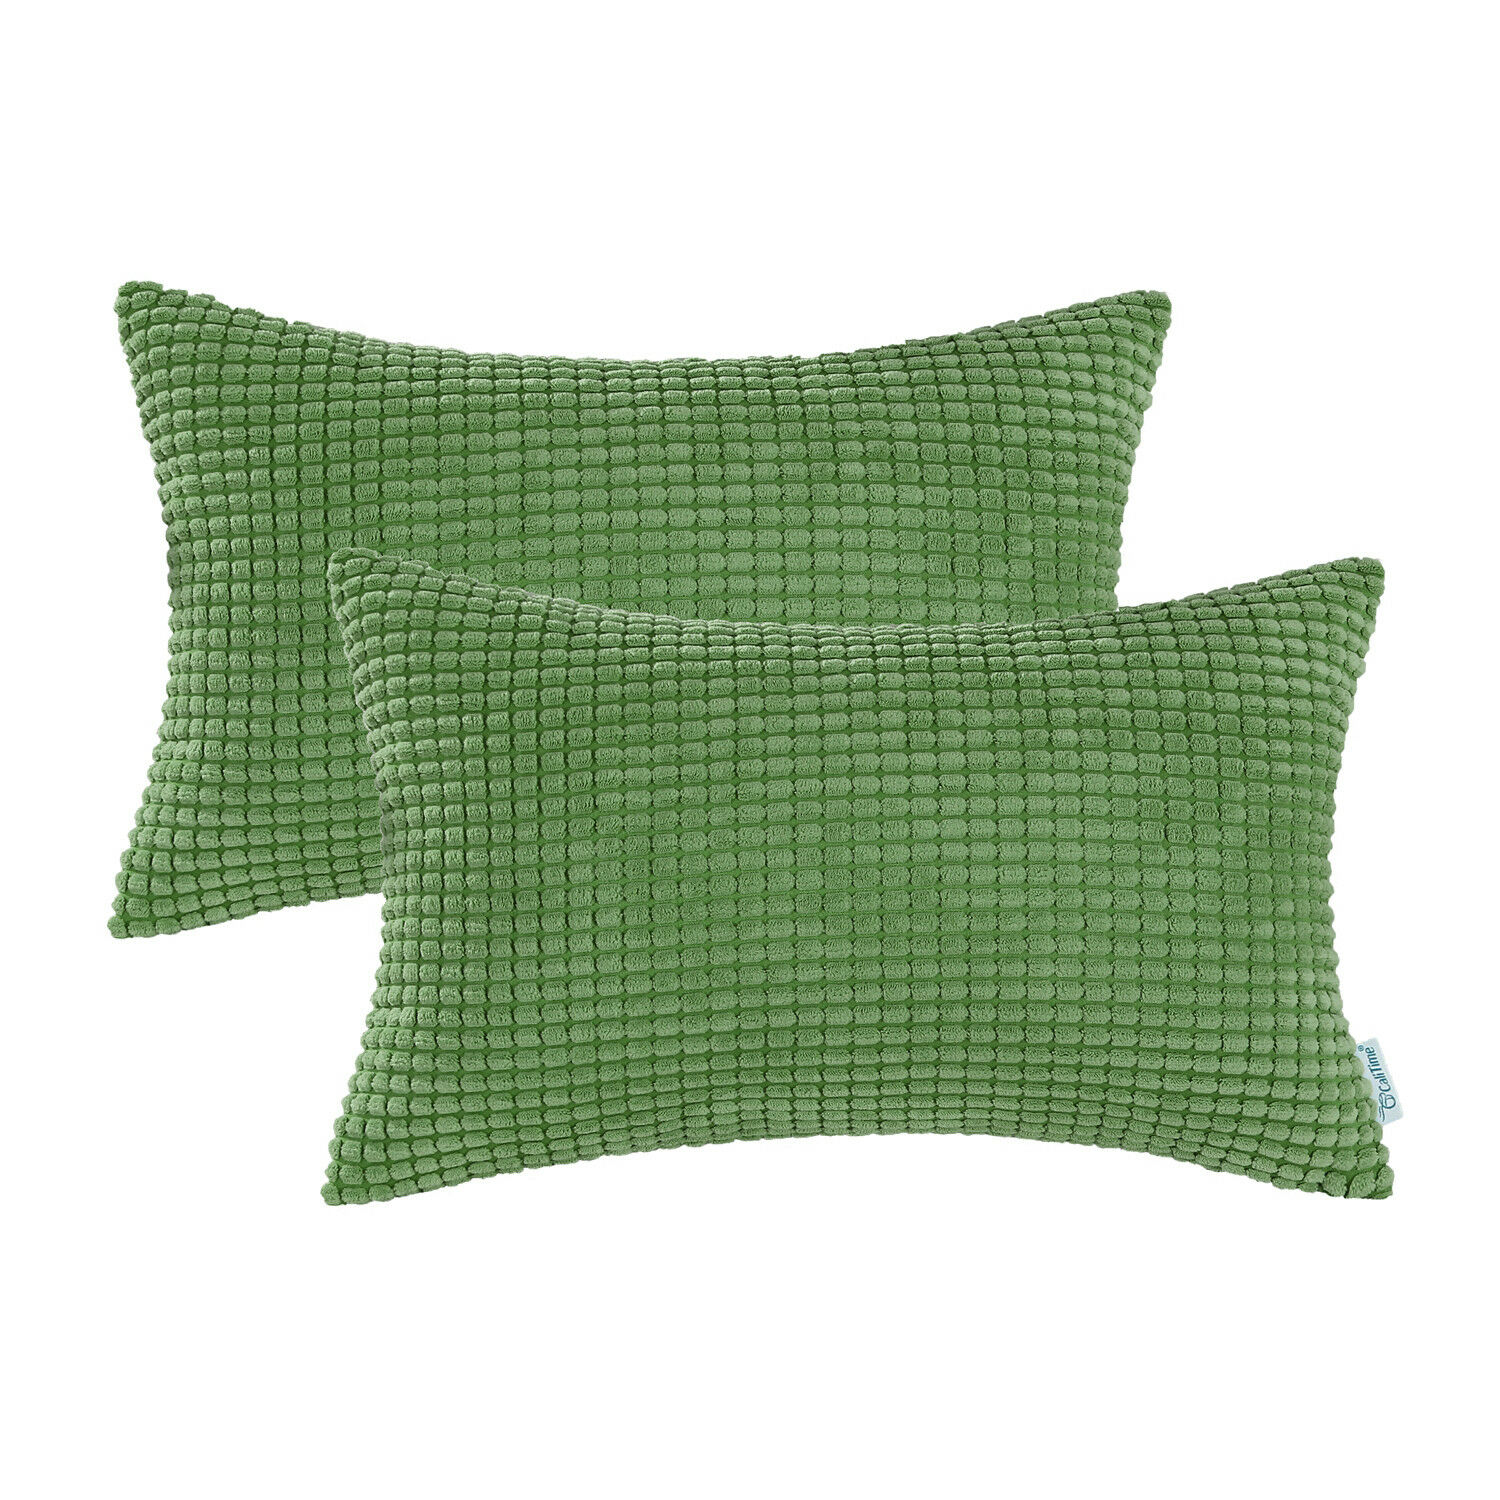 2Pcs Forest Green Throw Pillows Cover Shells Corn Corduroy S